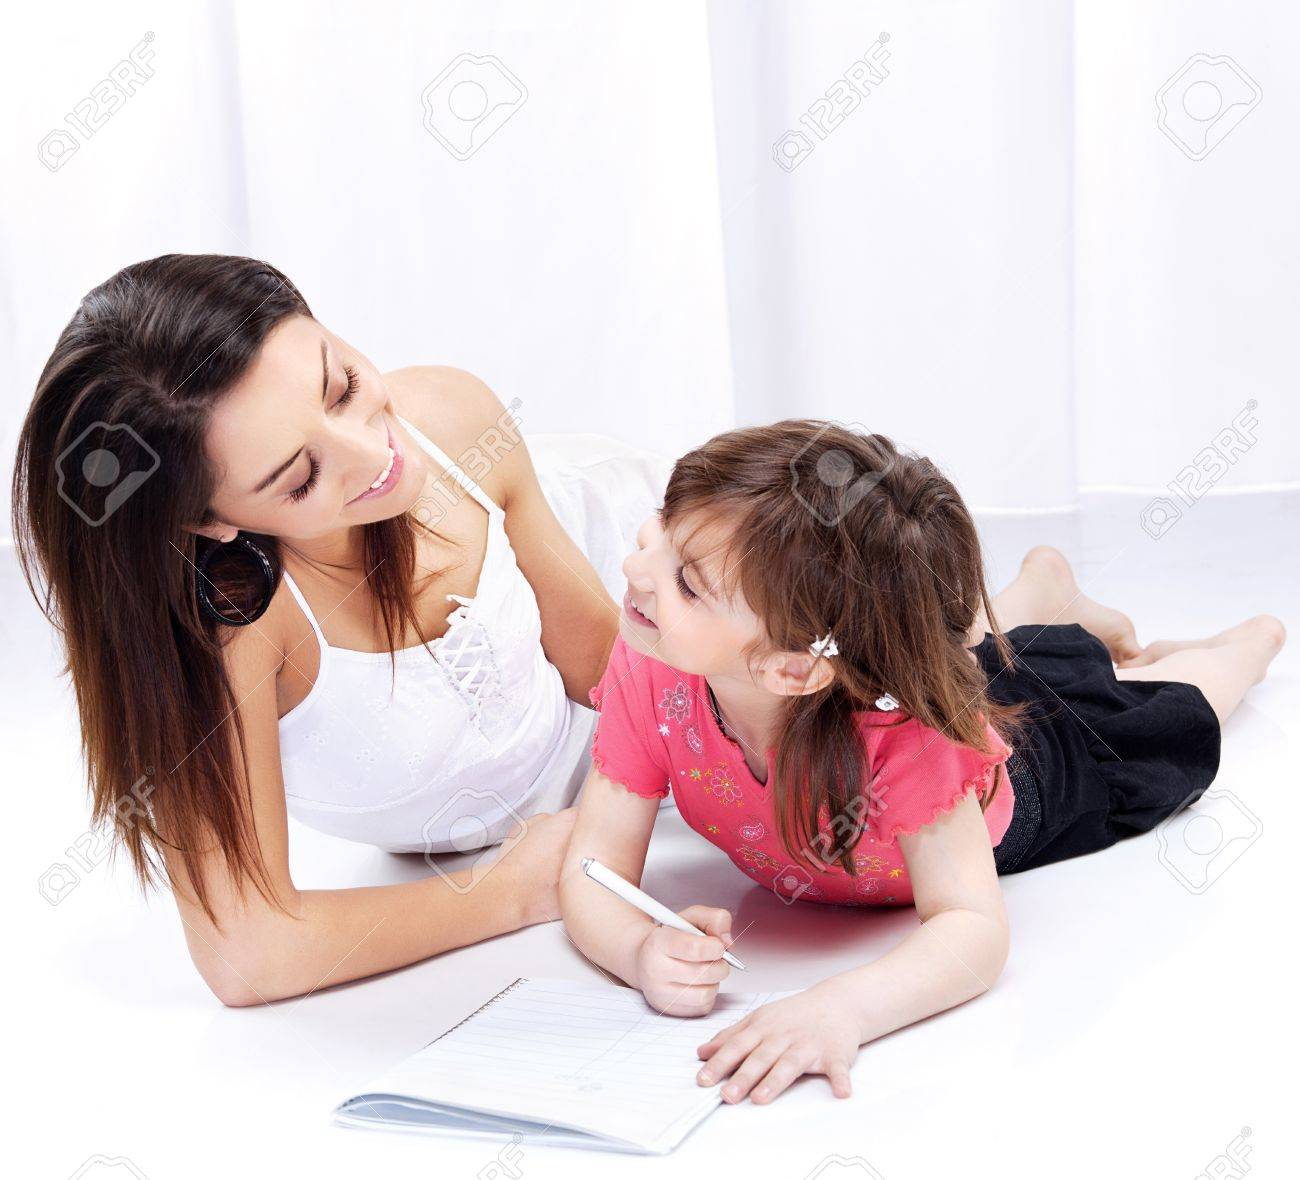 Woman and child drawing on notepad and laughing Stock Photo - 12789148